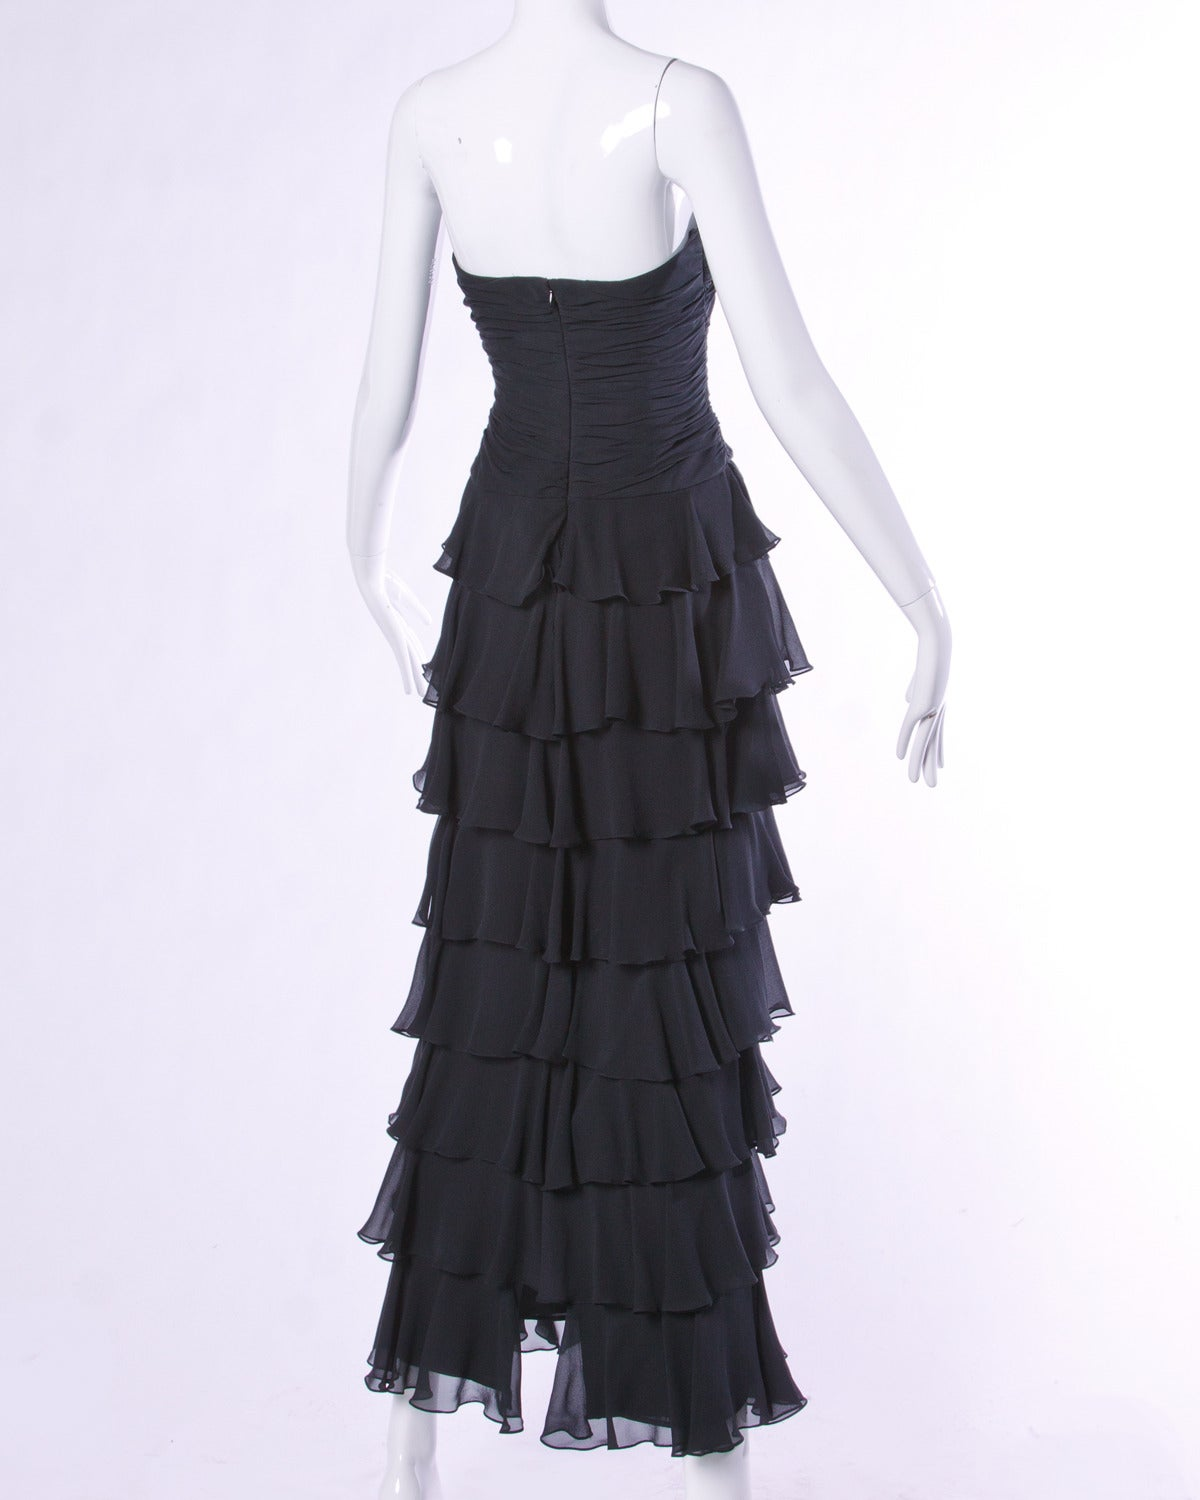 Lillie Rubin Vintage Black Tiered Silk Chiffon Strapless Evening Gown For Sale 2